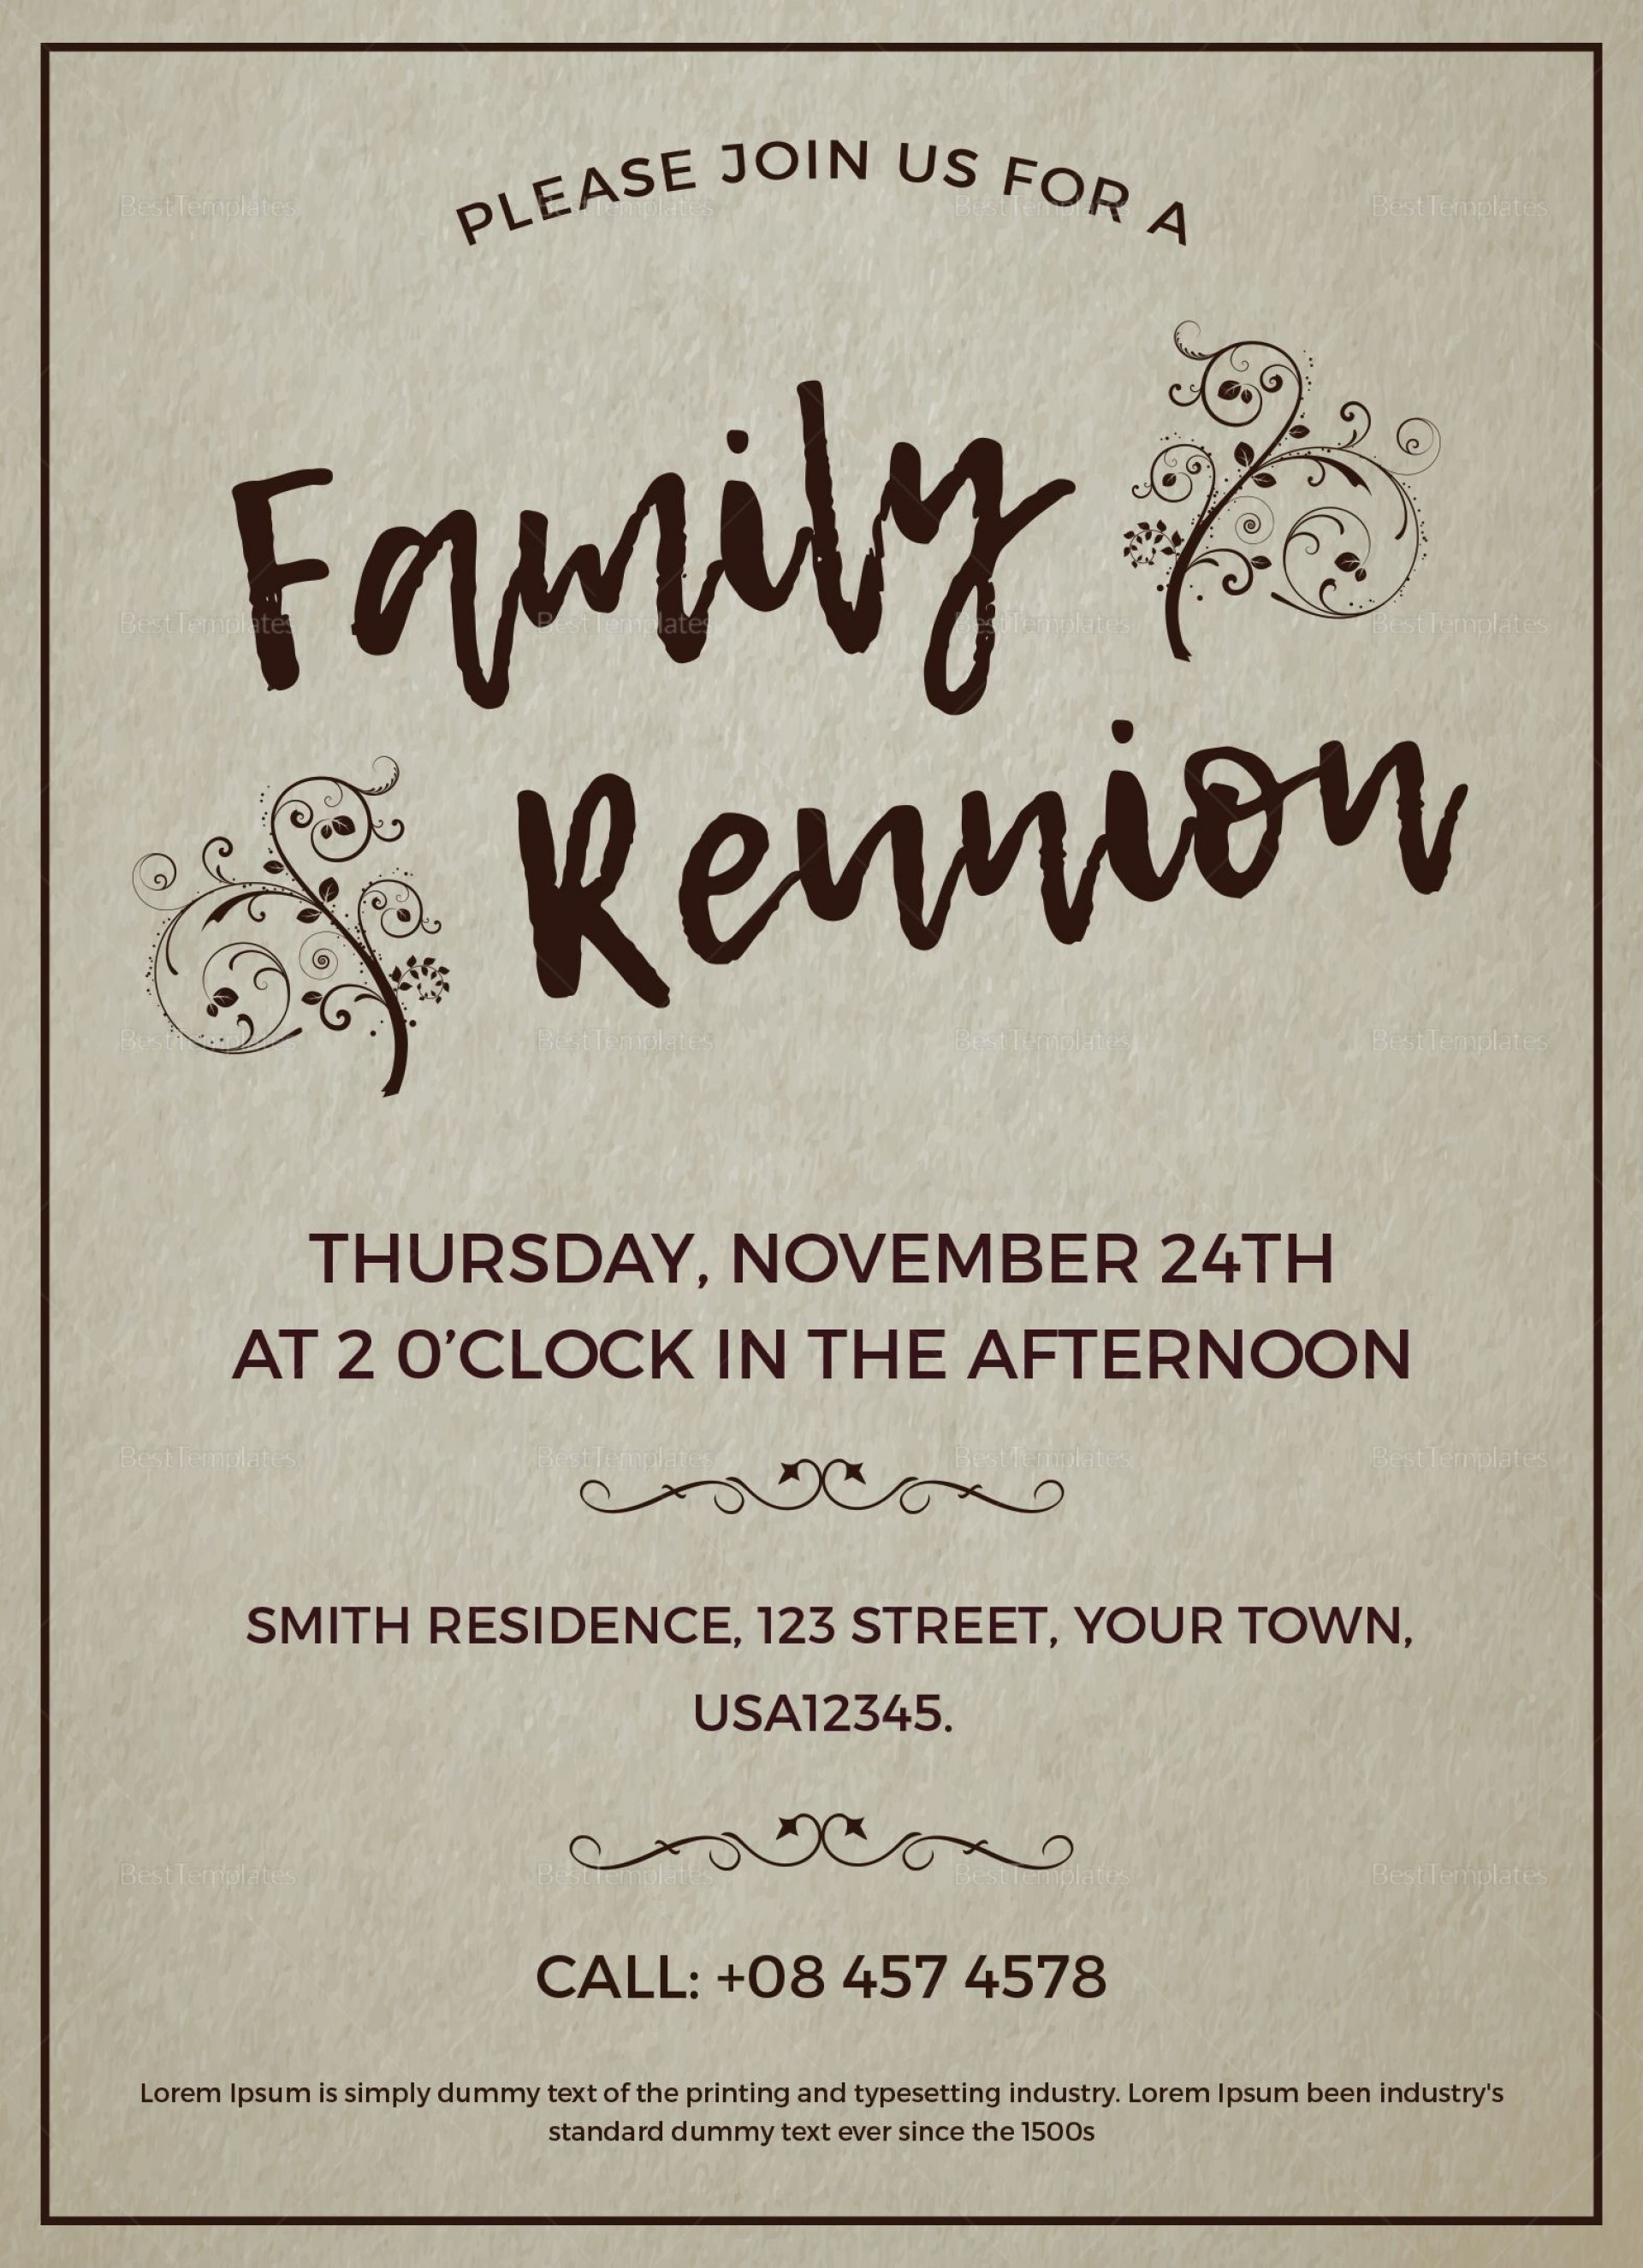 003 Surprising Family Reunion Invitation Card Template Concept 1920